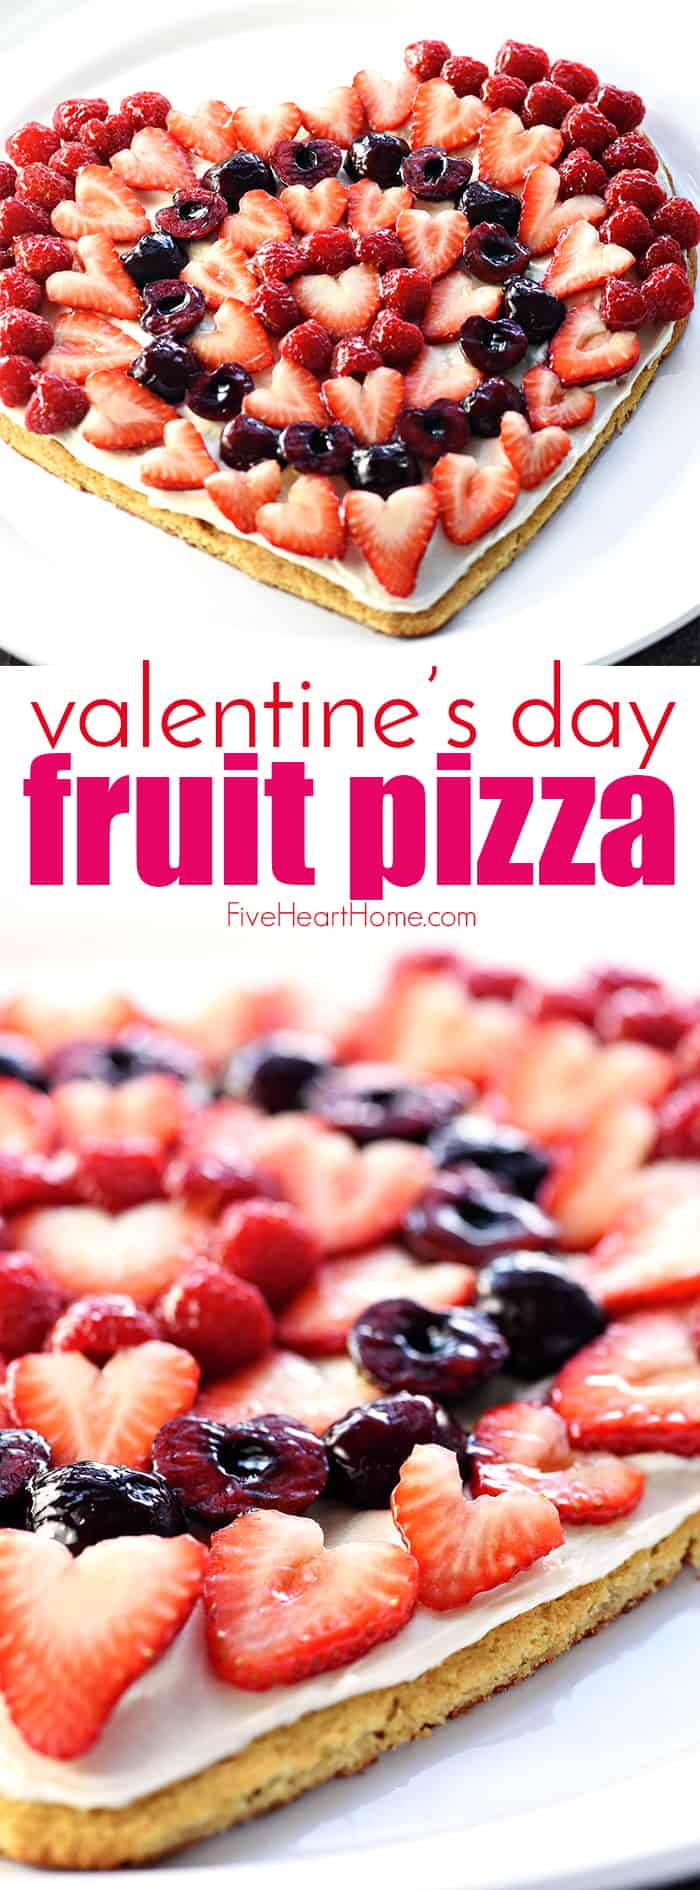 Valentine's Day Heart Shaped Fruit Pizza